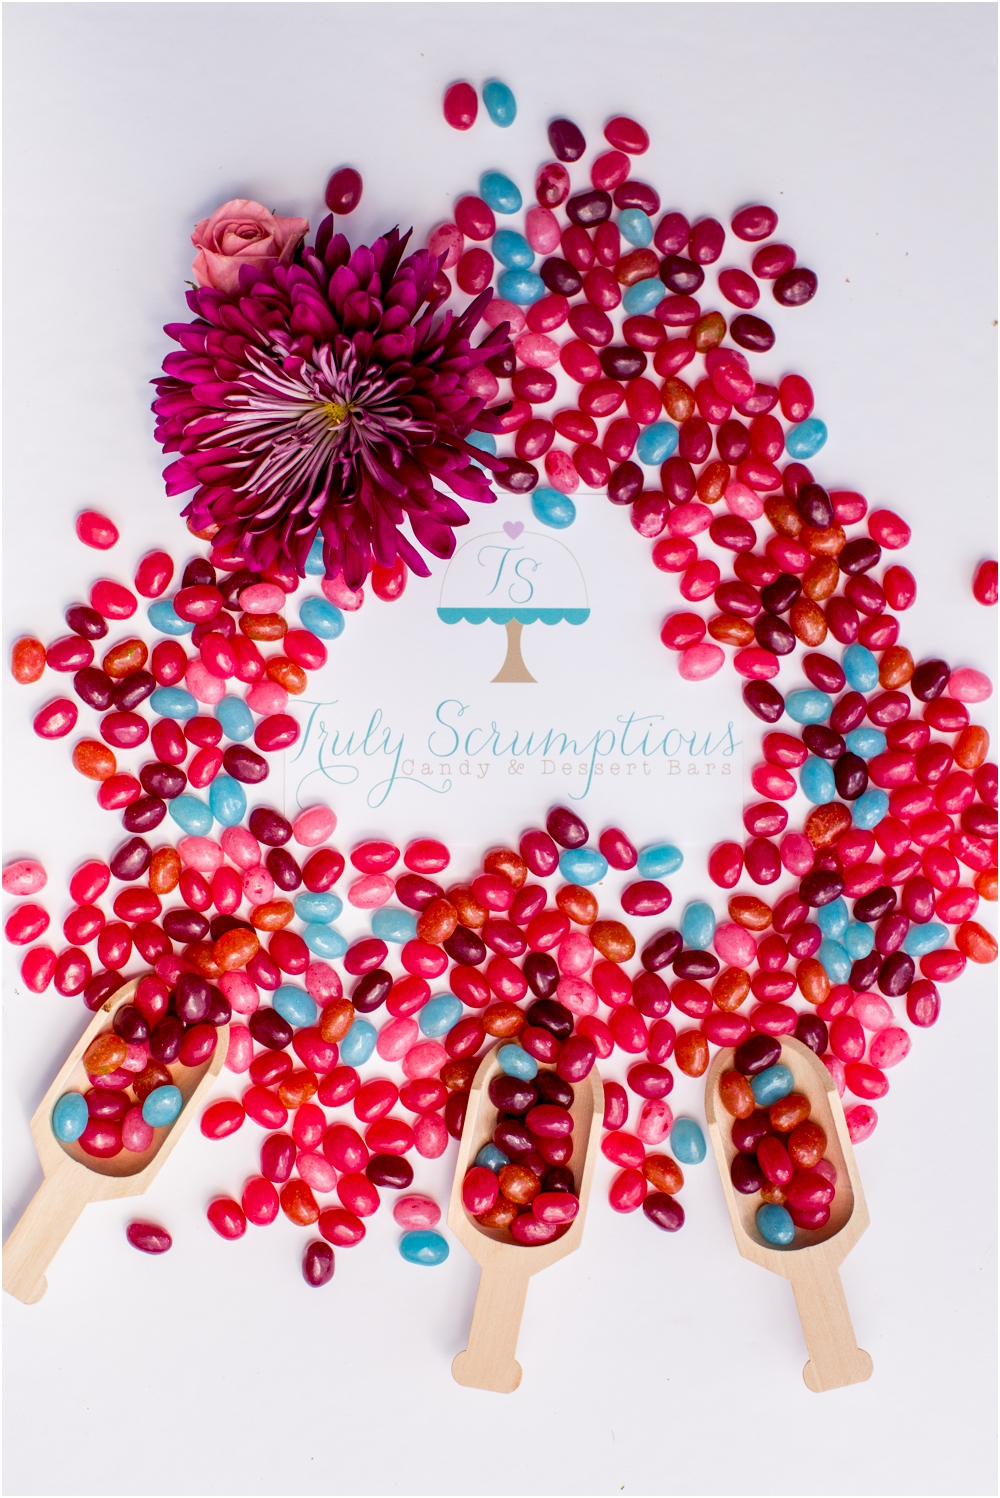 truly scrumptious wedding candy bar living radiant photography_0002.jpg